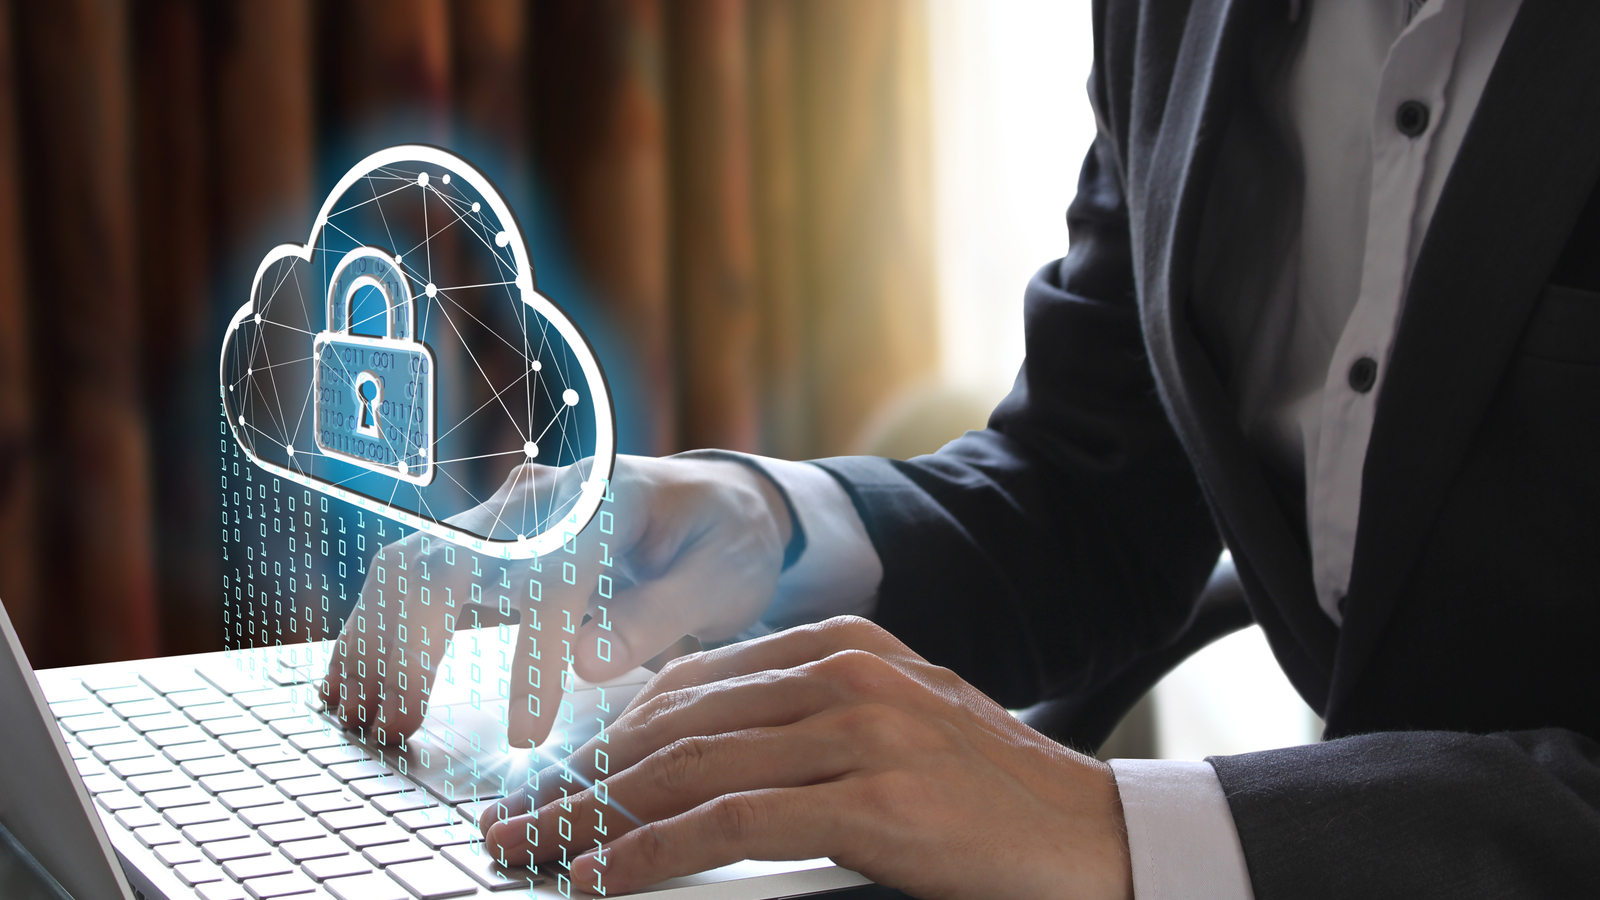 Forum to Discuss Cloud, Data Security and Policy Issues Announced